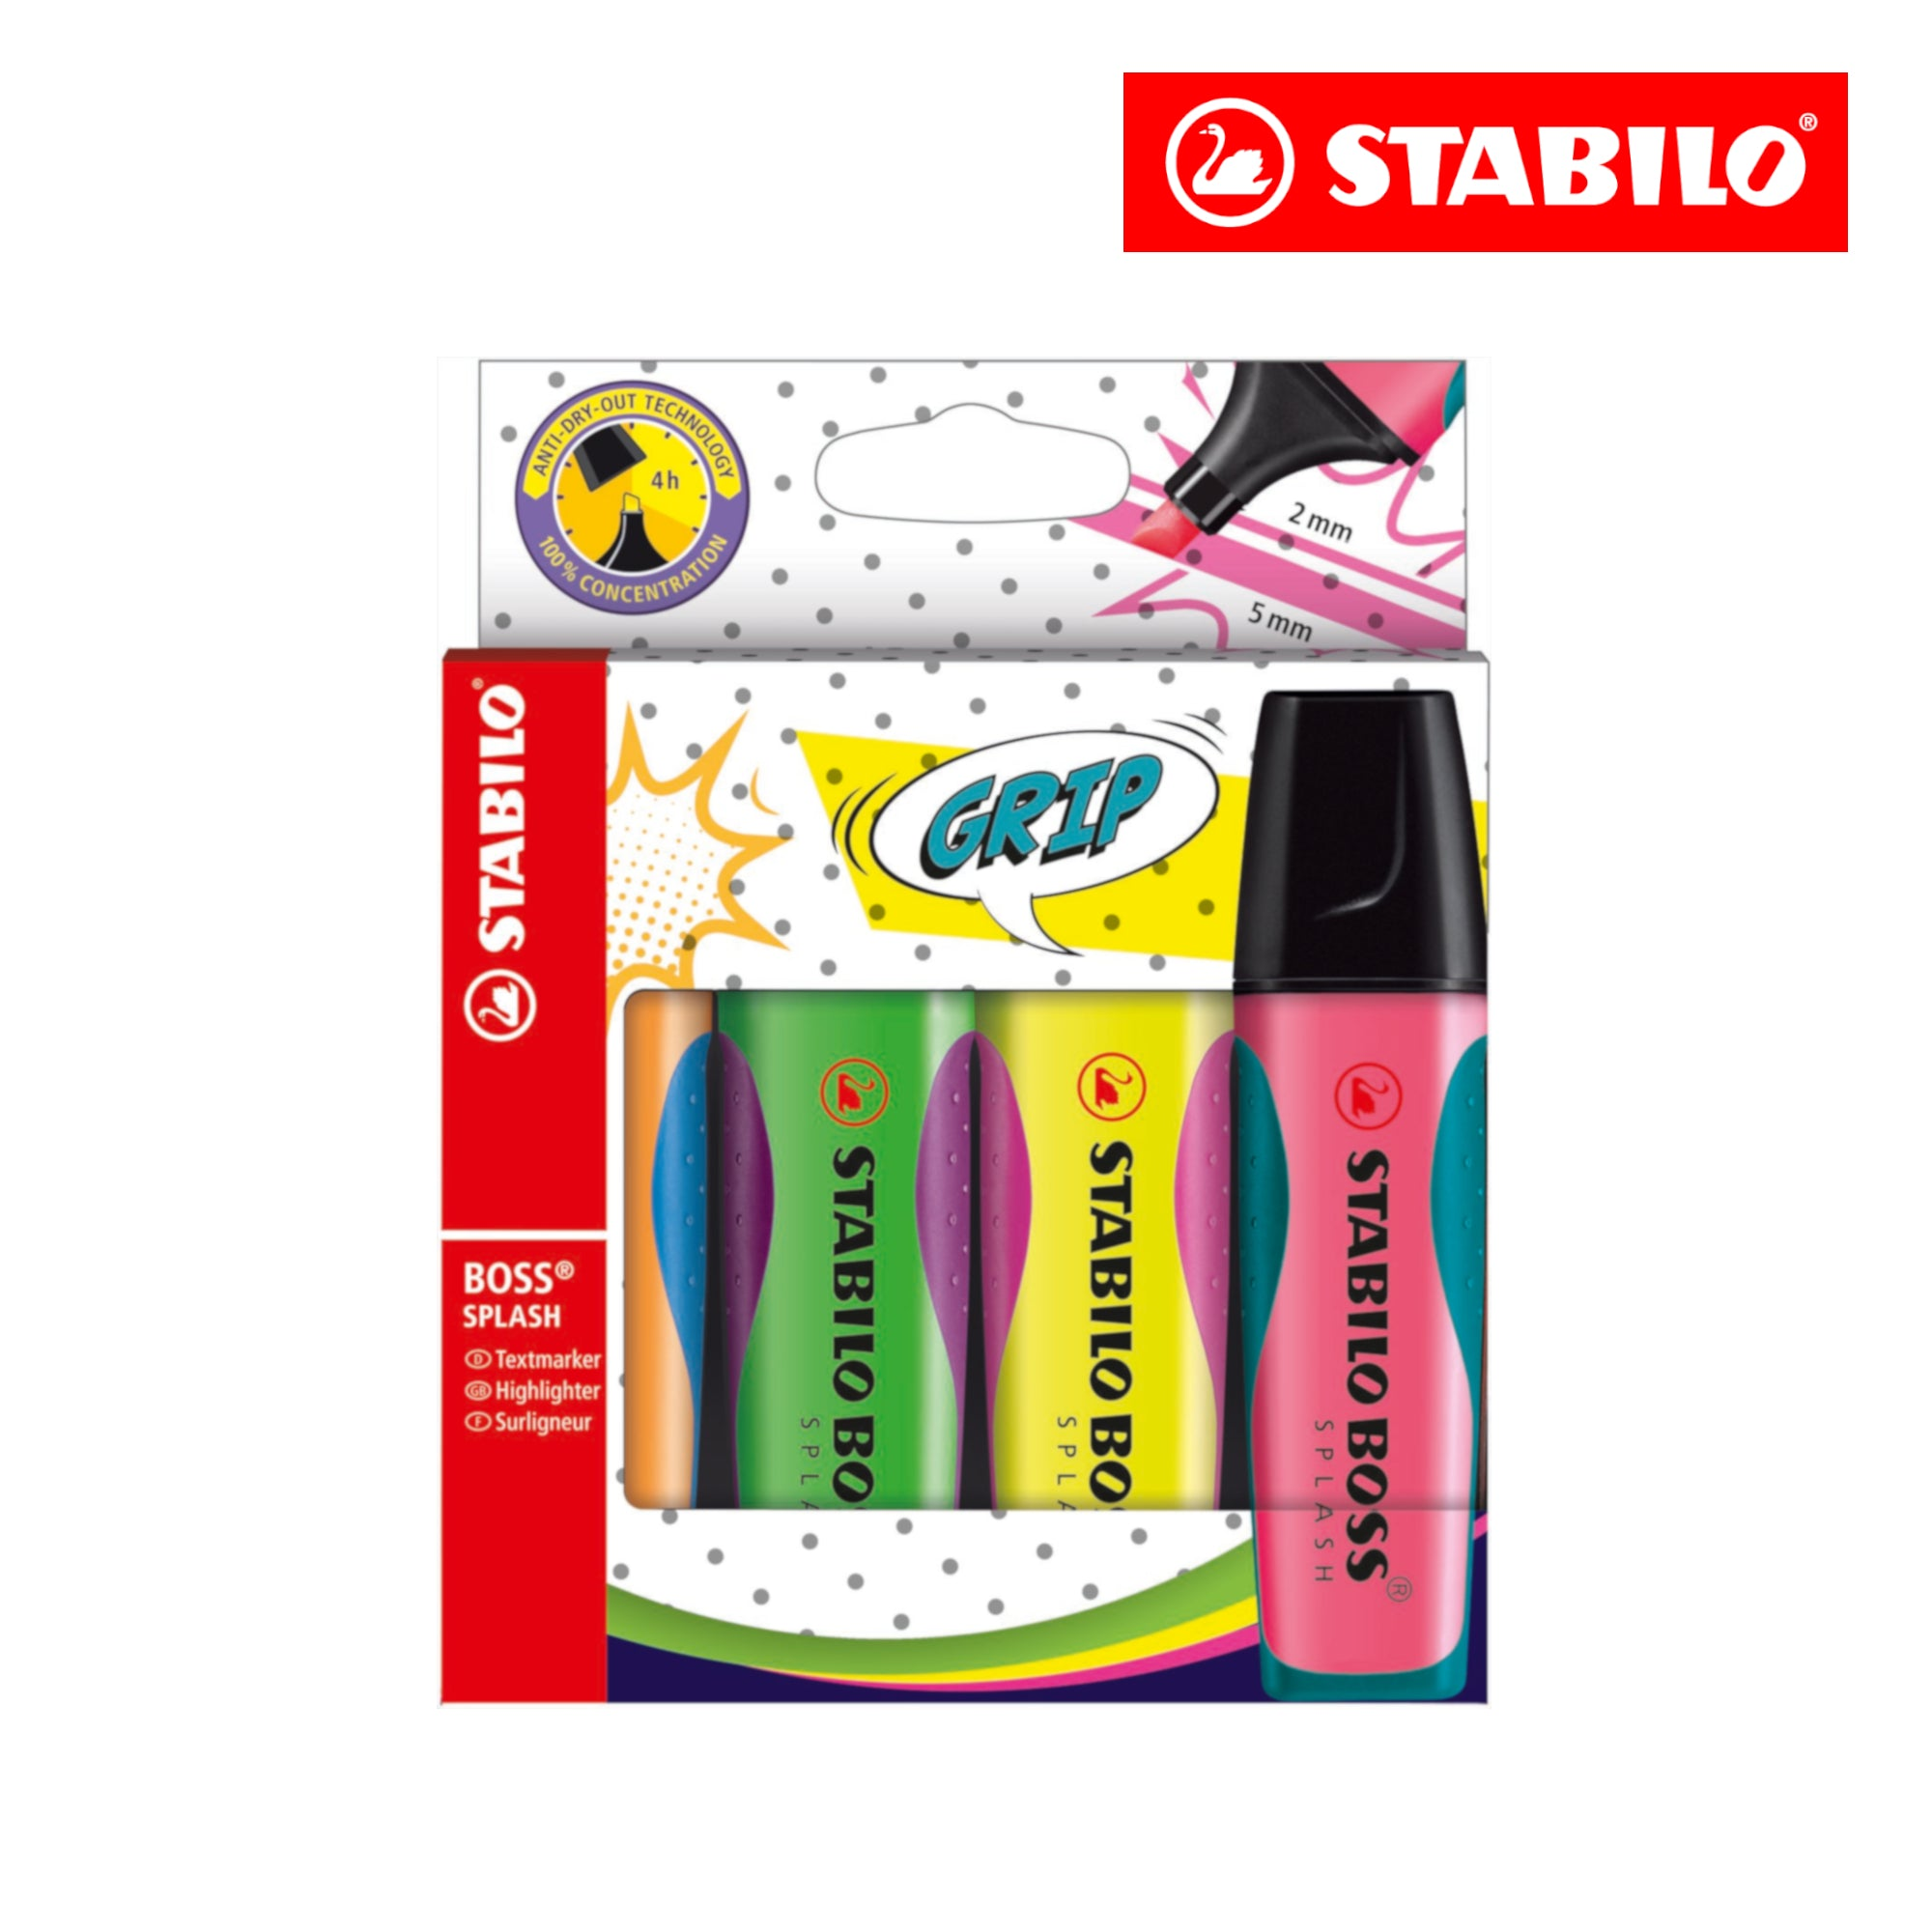 STABILO BOSS SPLASH Highlighter (Set of 4 colours) Thumbnail